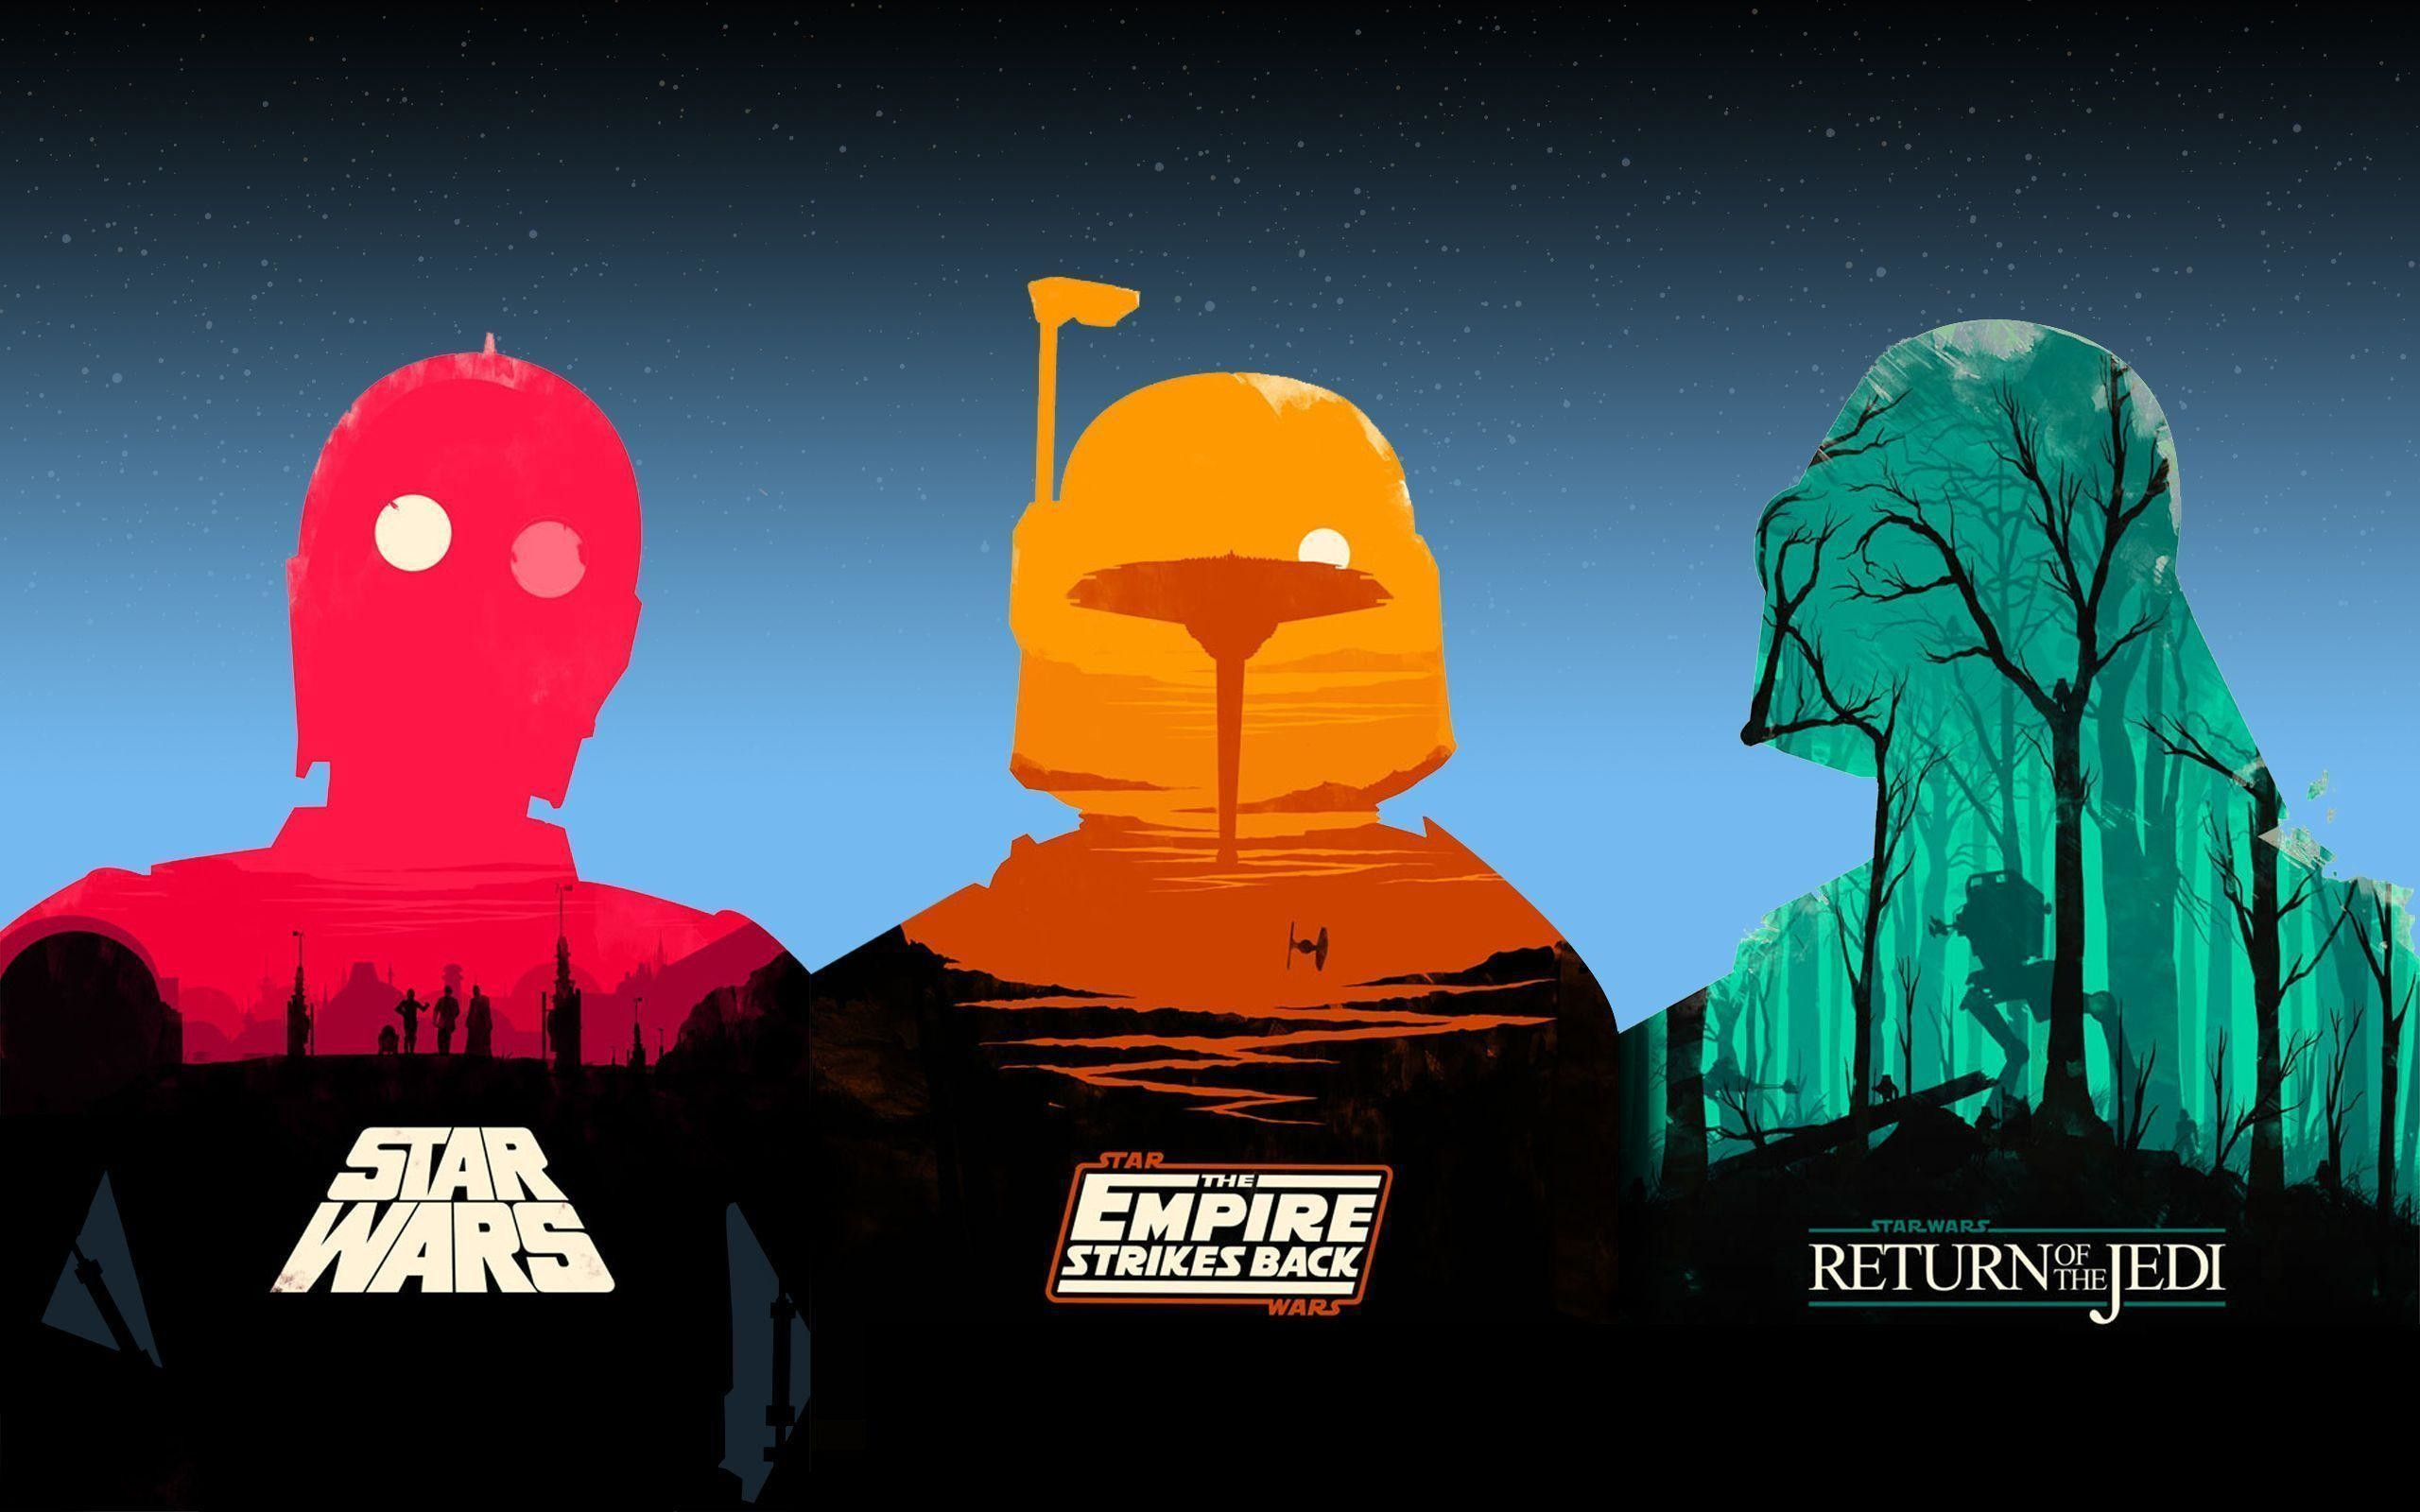 I've compiled Olly Moss' Star Wars posters into one epic wallpaper .